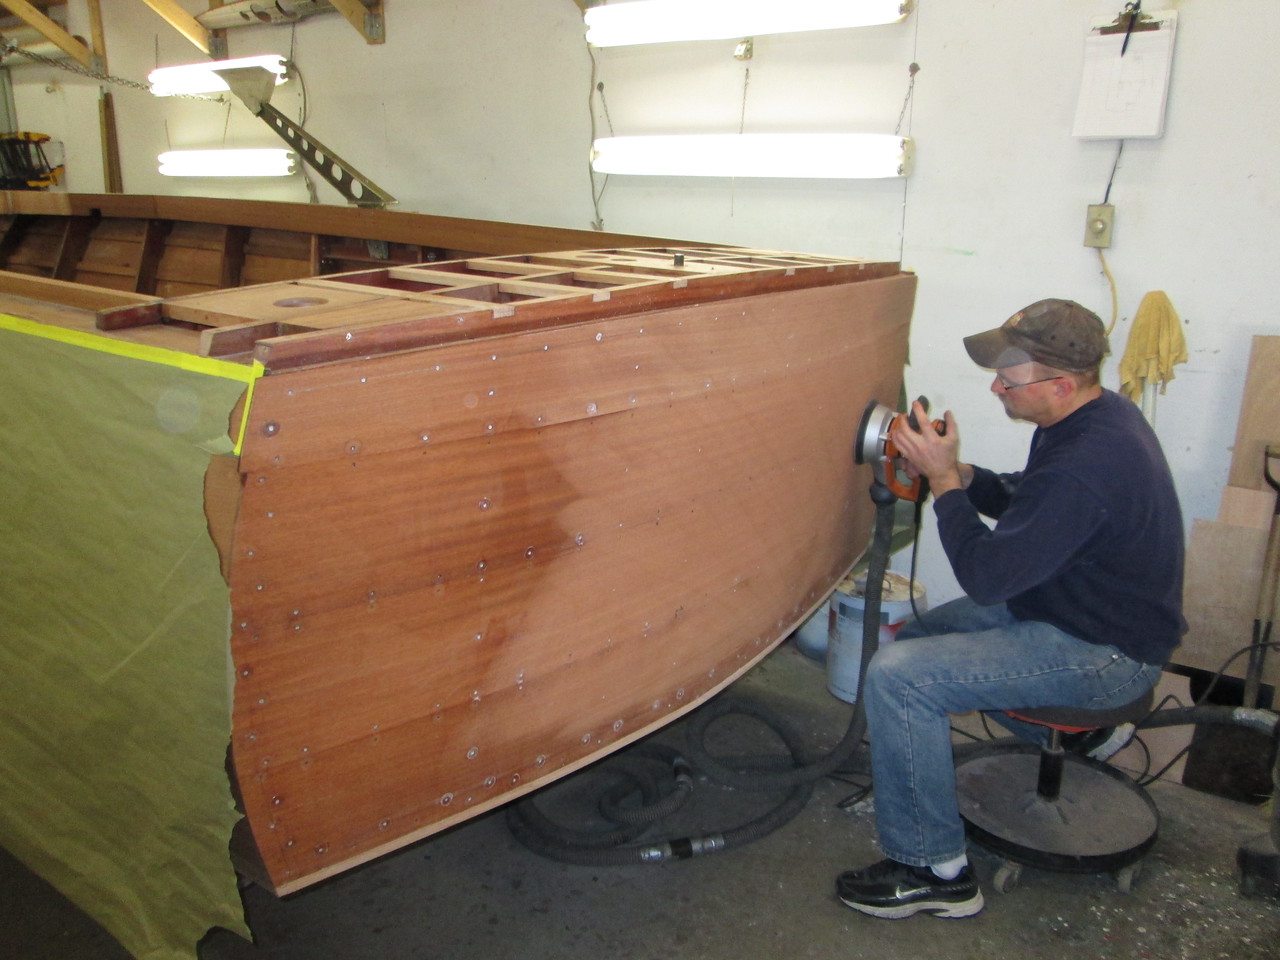 Sanding the transom before drilling for plugs.